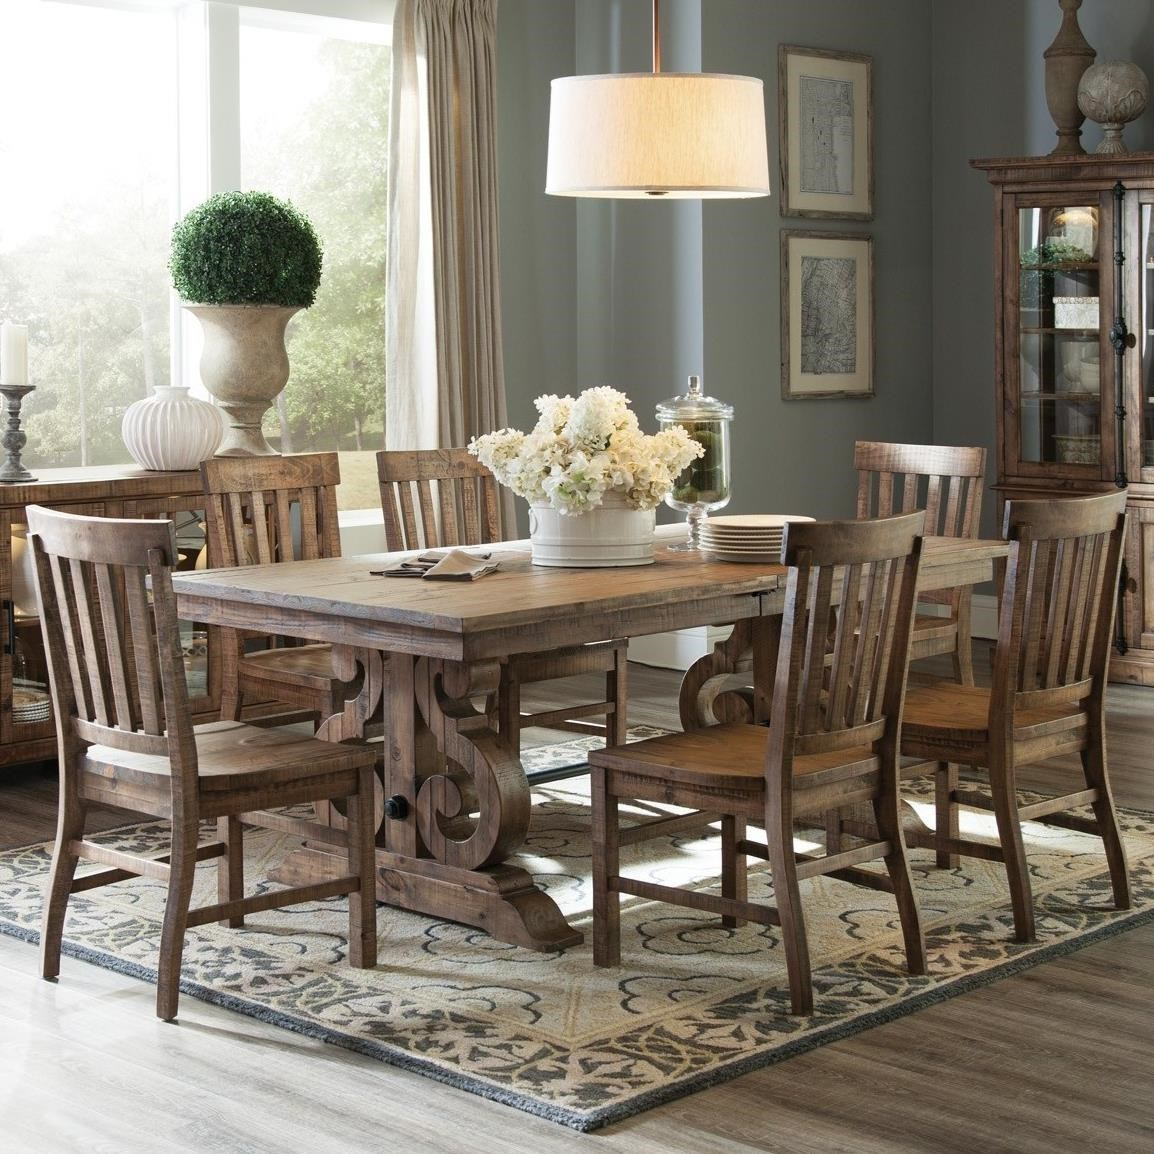 Magnussen Home Willoughby7-Piece Rectangular Dining Table Set ...  sc 1 st  Pilgrim Furniture : solid pine dining table and chairs - Cheerinfomania.Com